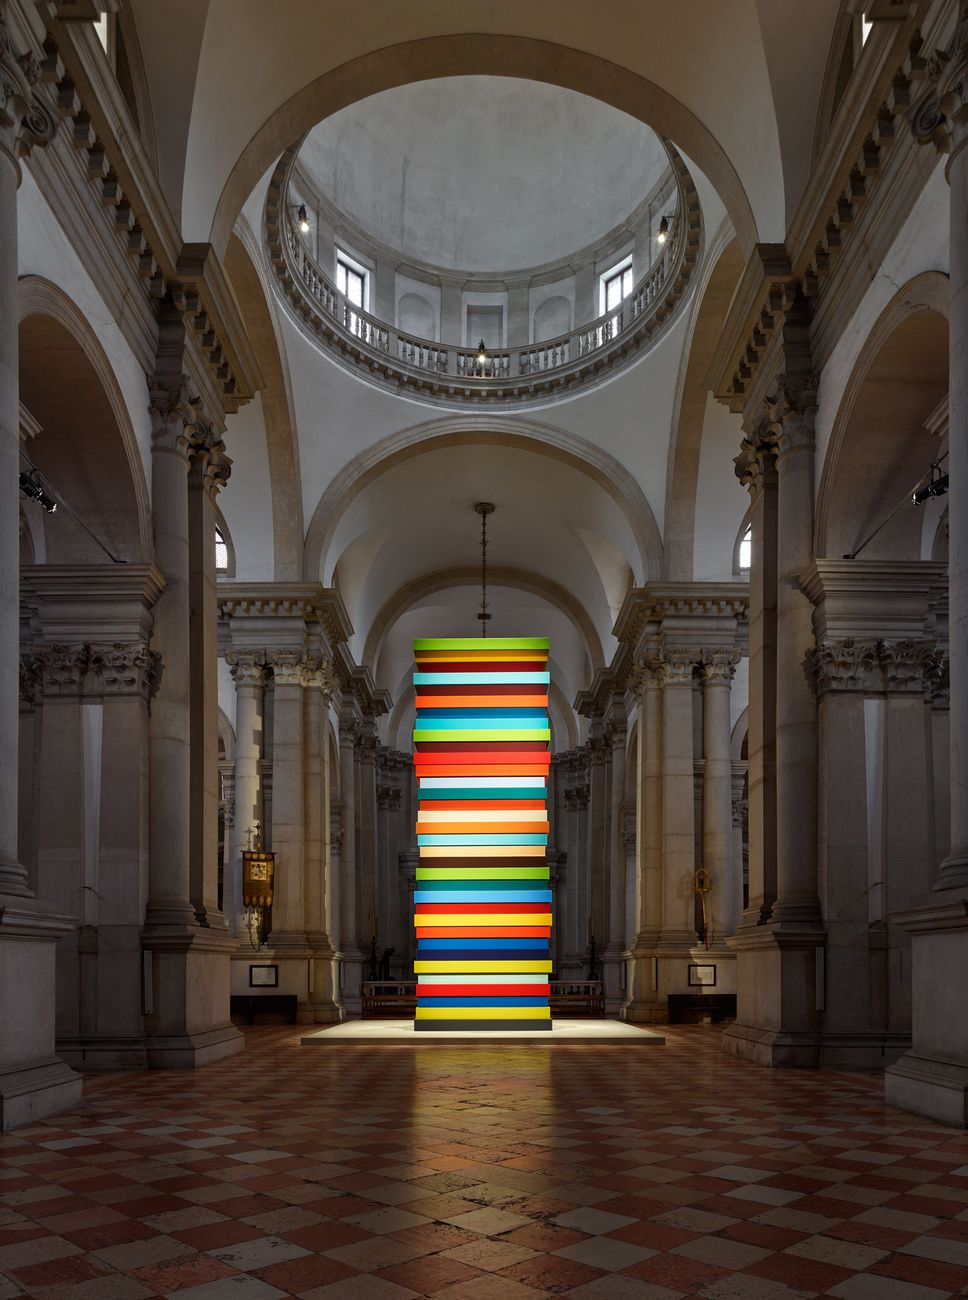 Sean Scully, Opulent Ascension, 2019. Abbazia di San Giorgio Maggiore, Venezia 2019 © Sean Scully. Courtesy the Artist and KEWENIG, Berlino. Photo Stefan Josef Müller, Berlino